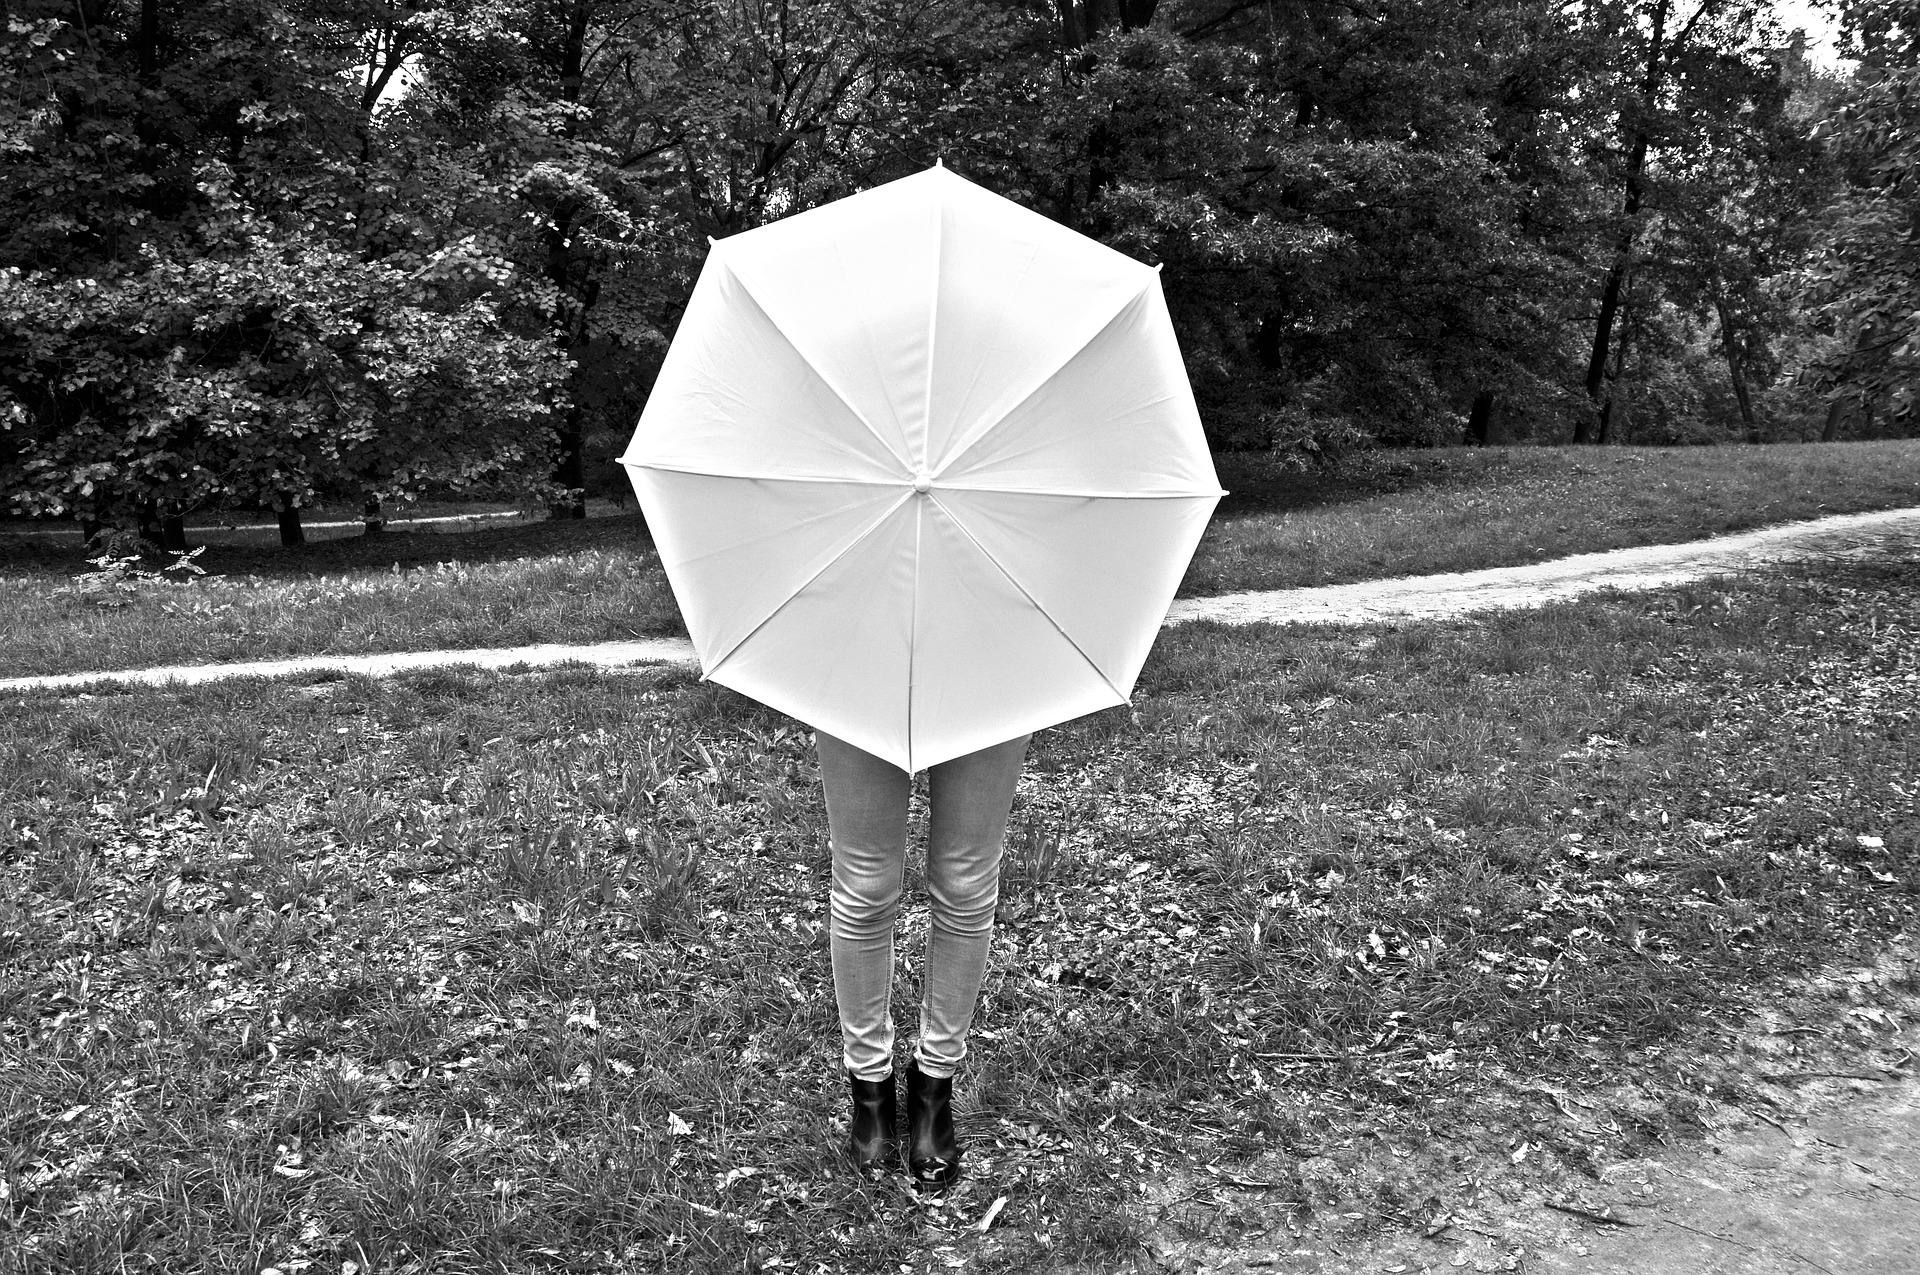 person with umbrella, related with sober living